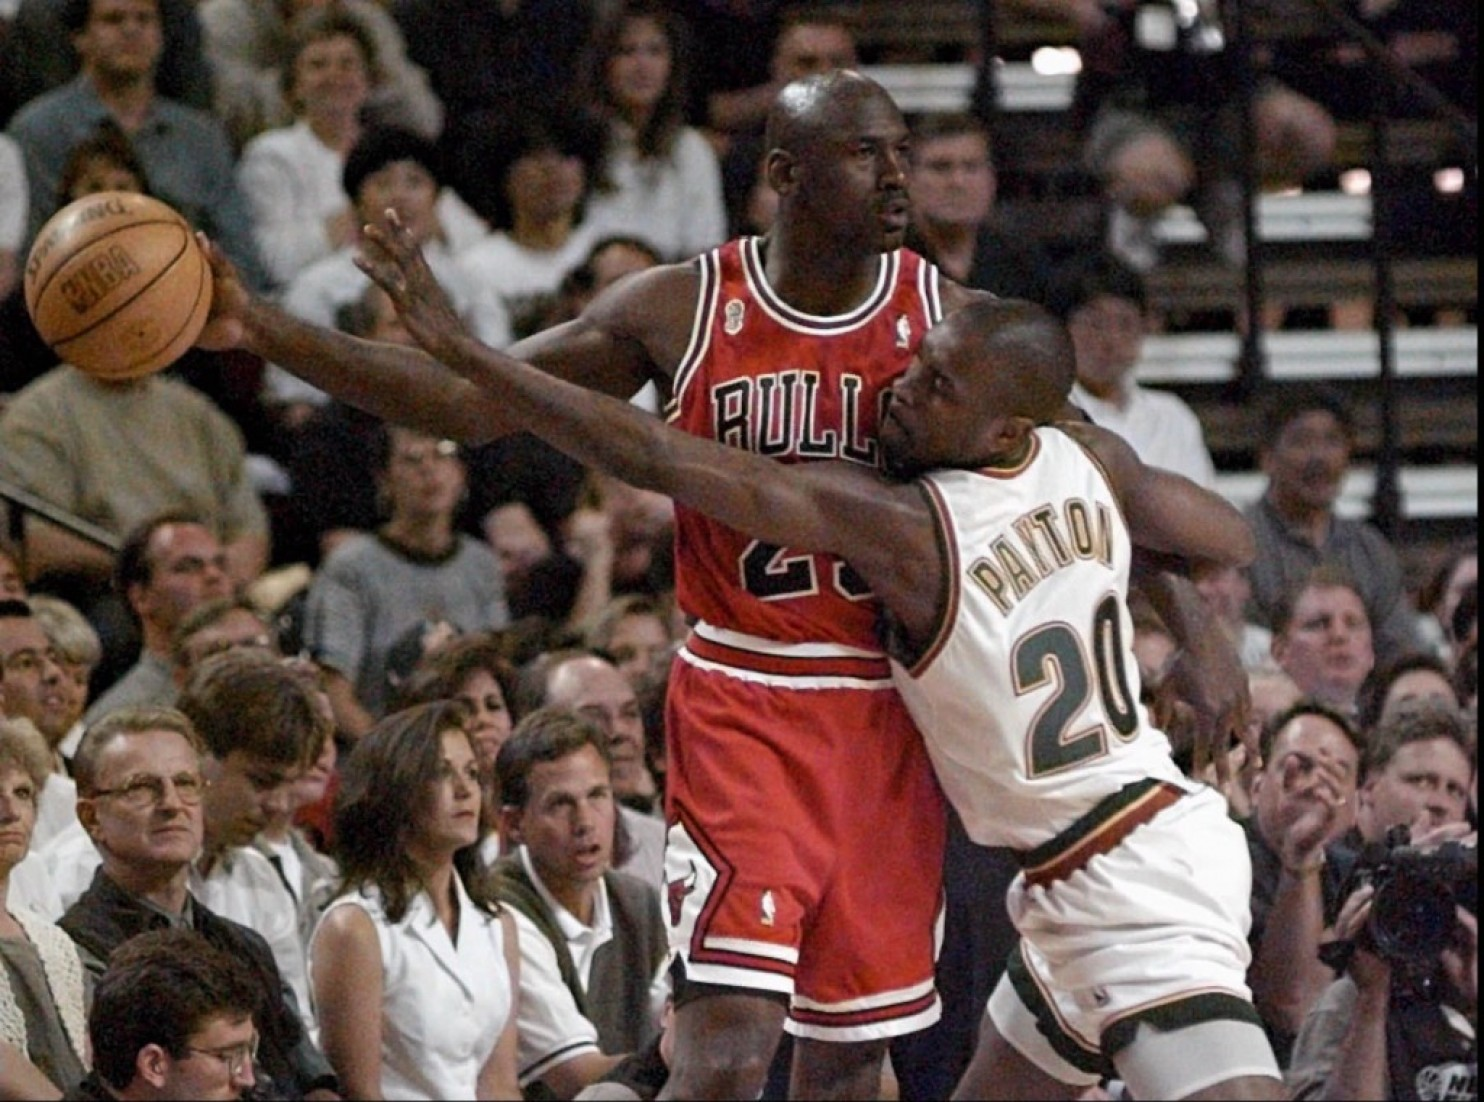 DAR Sports 1996 NBA Finals Chicago Bulls vs Seattle Supersonics